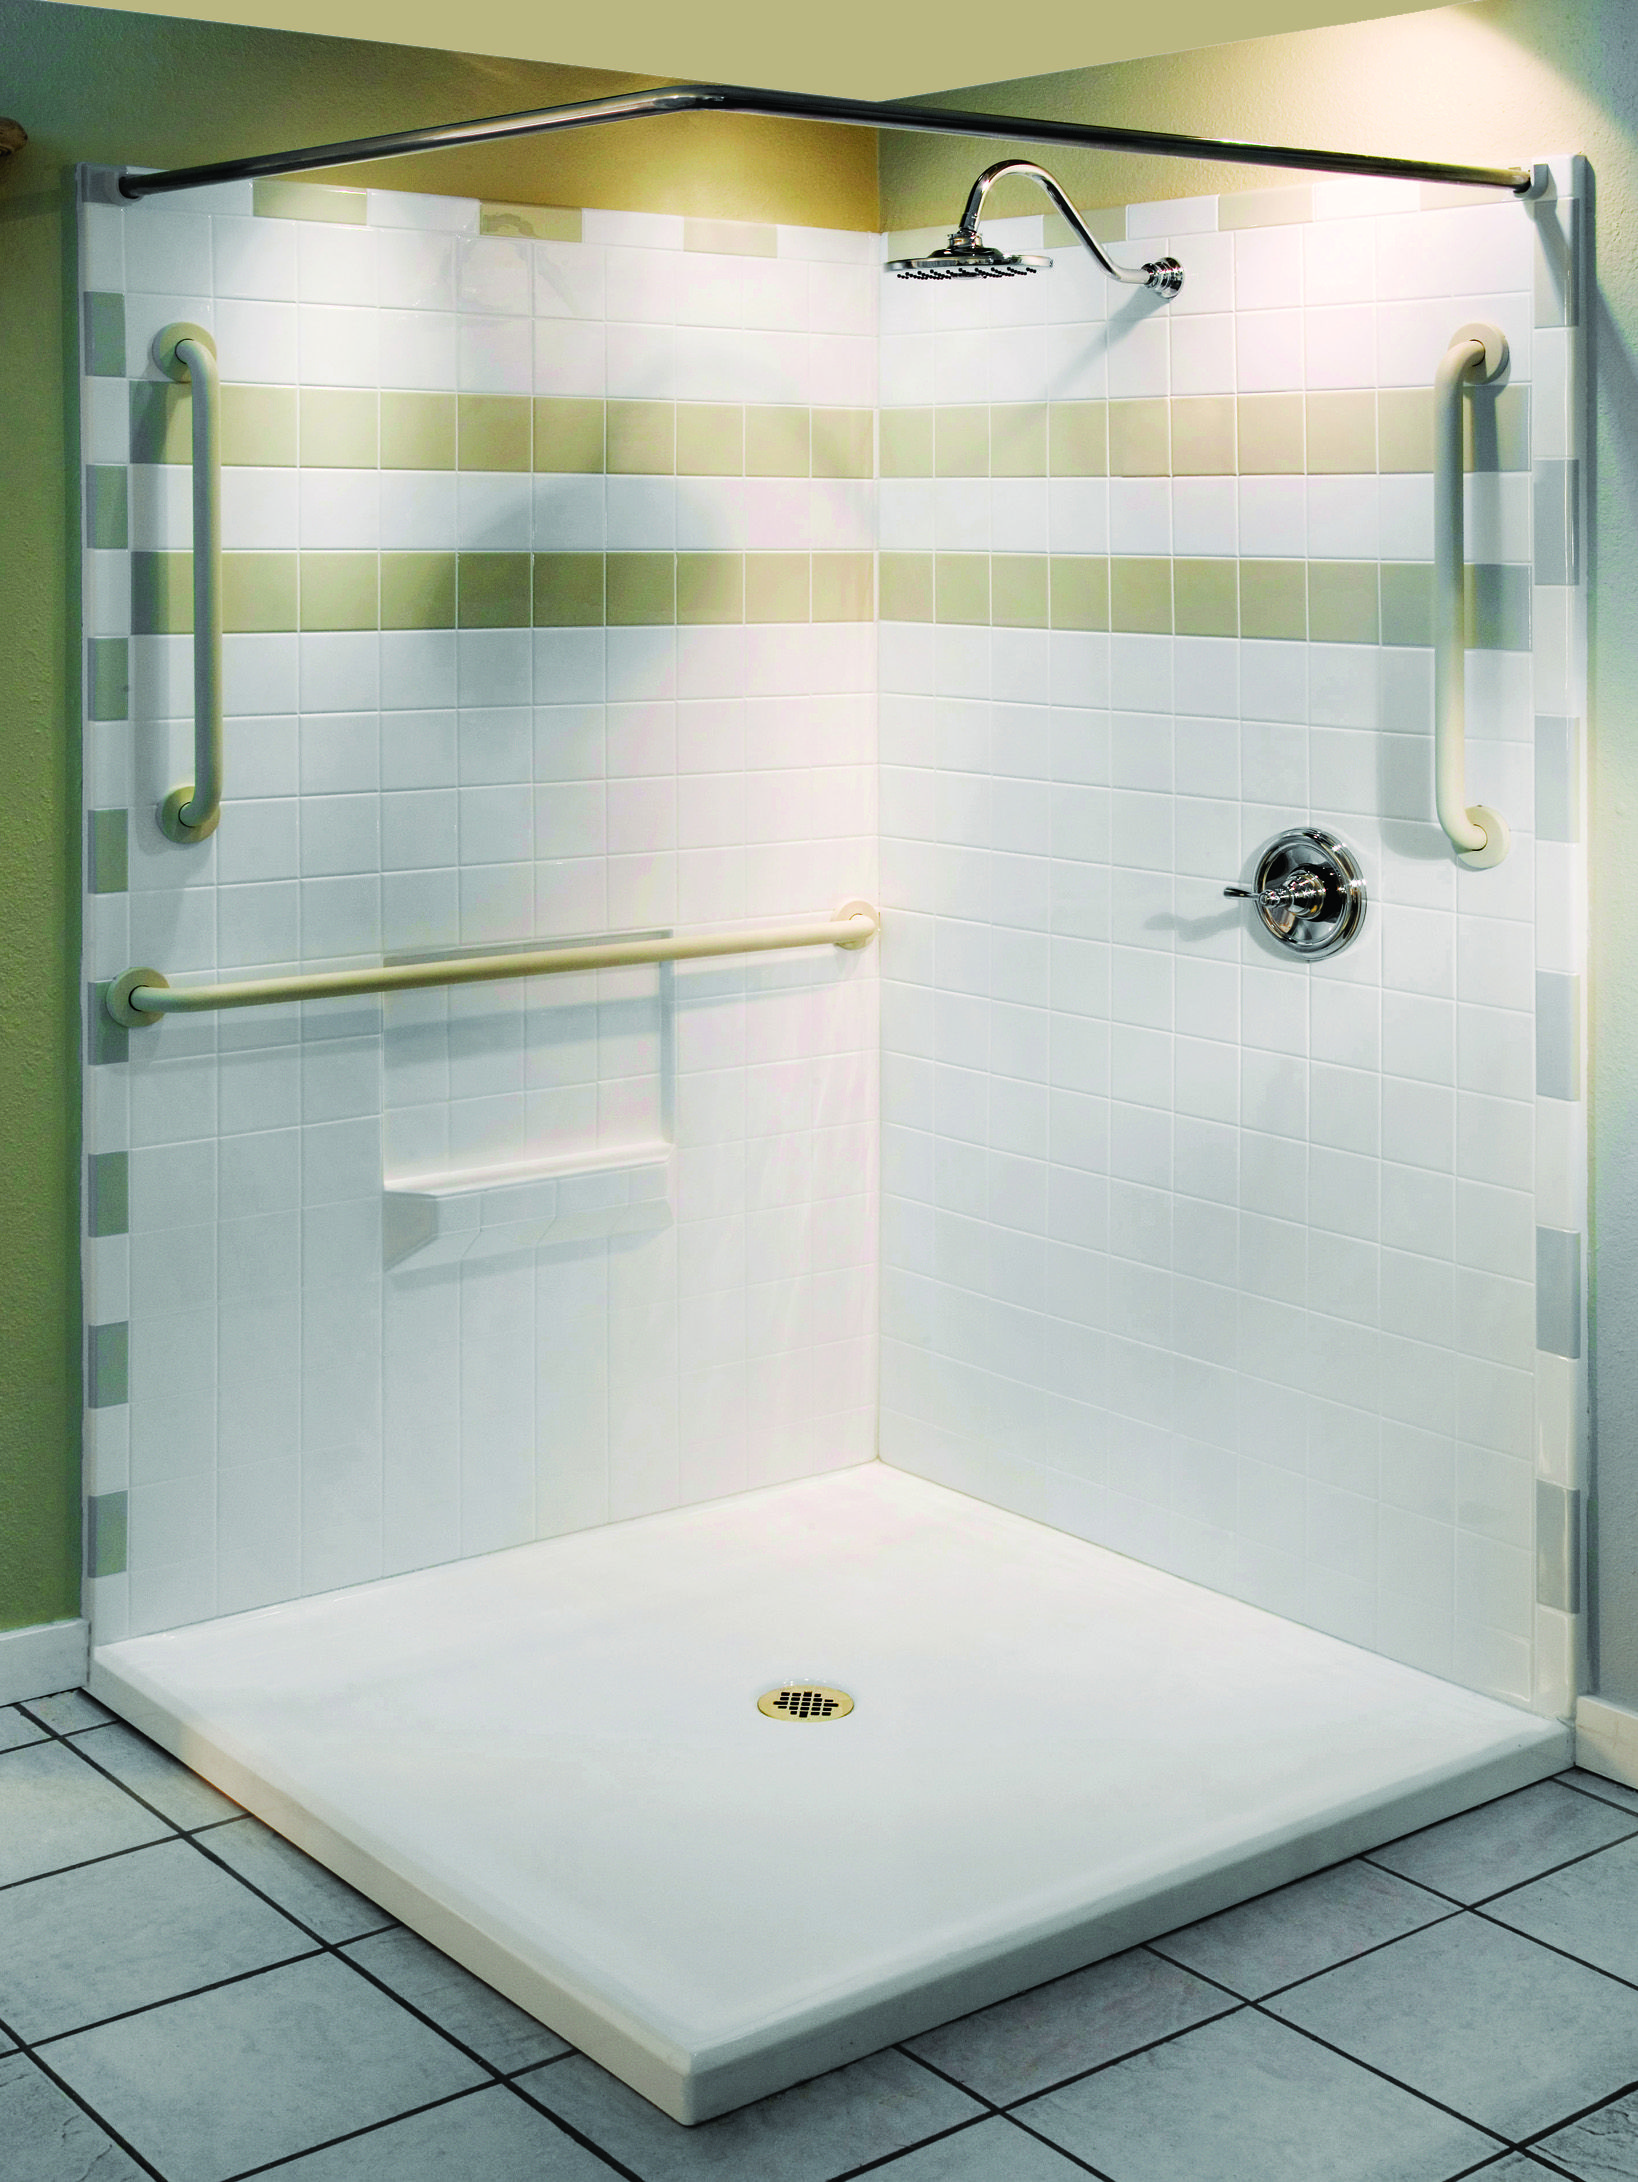 Barrier Free Shower for easy access. Aquassure Accessible